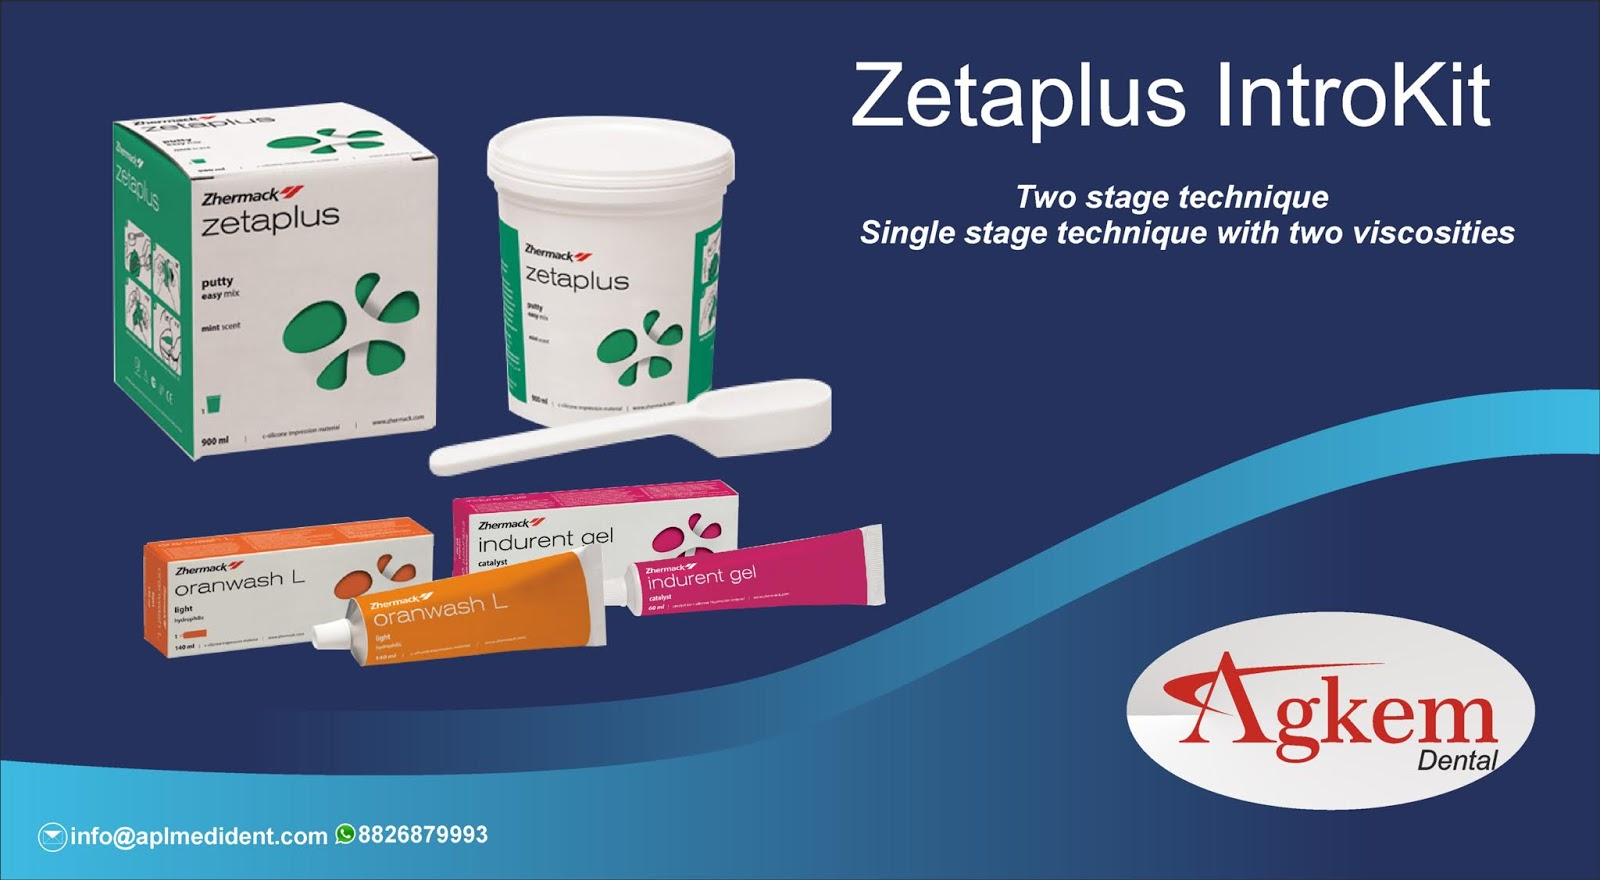 Zhermack Zetaplus Introkit At Best Price In India | Dental